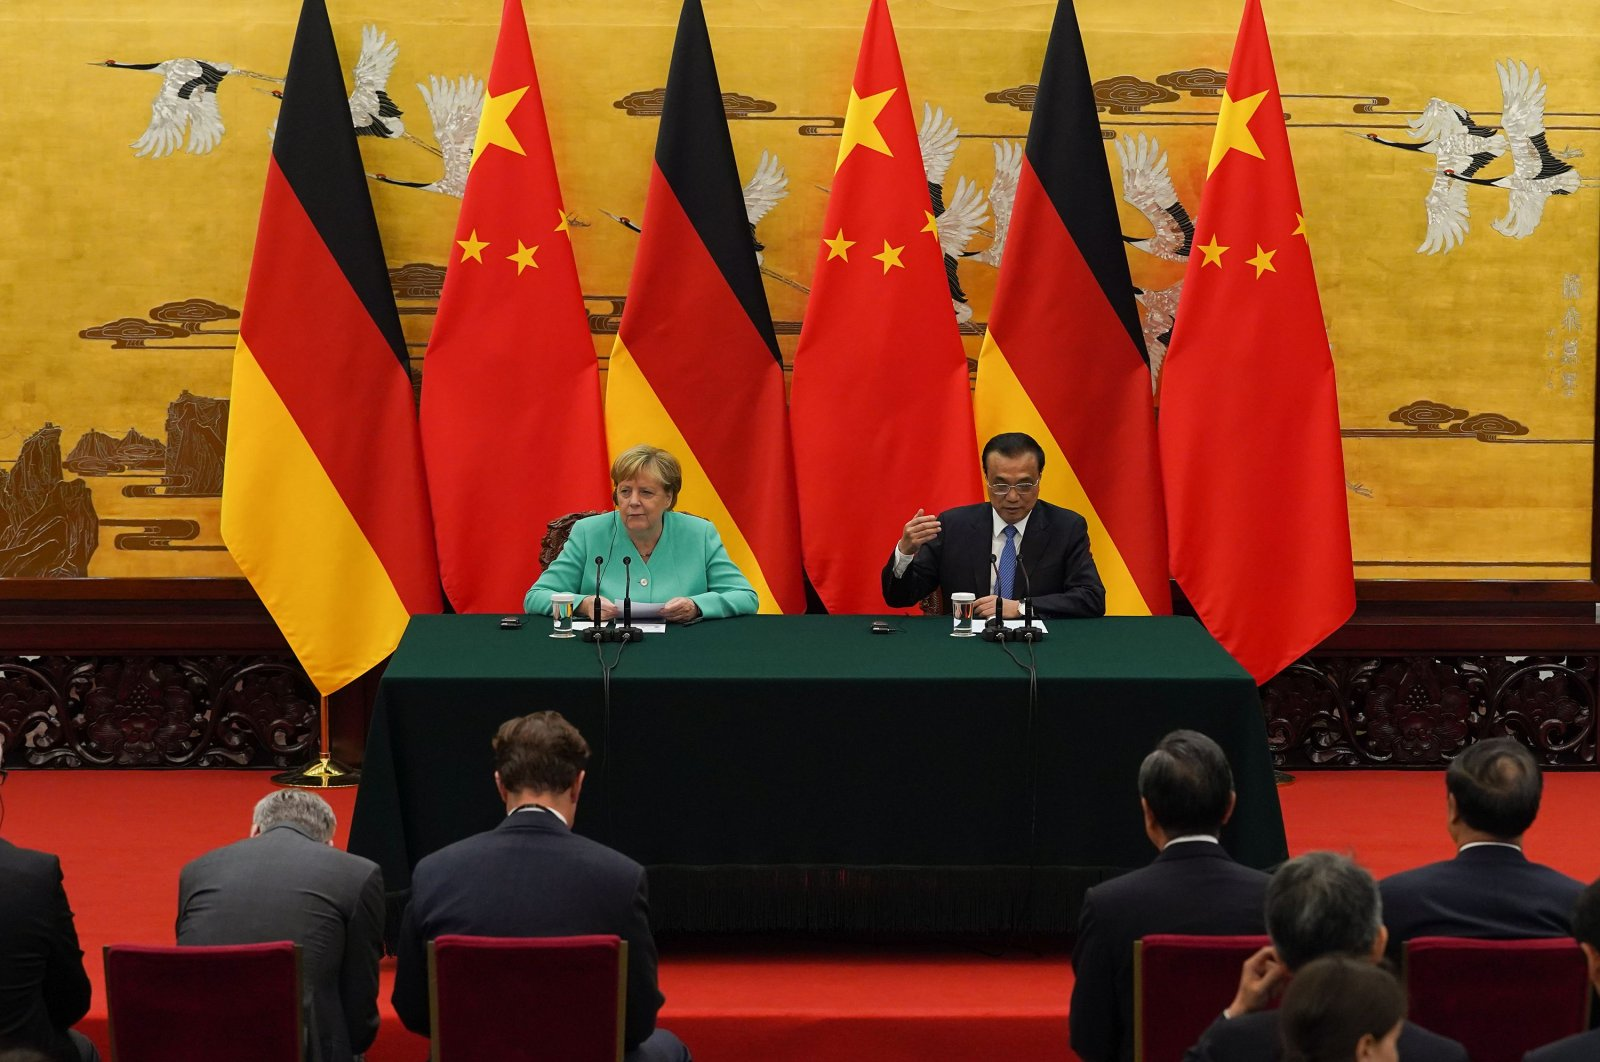 This Sept. 6, 2019, file photo shows Chinese Premier Li Keqiang (R) and German Chancellor Angela Merkel giving a press conference following a meeting at the Great Hall of the People in Beijing. (AFP File Photo)